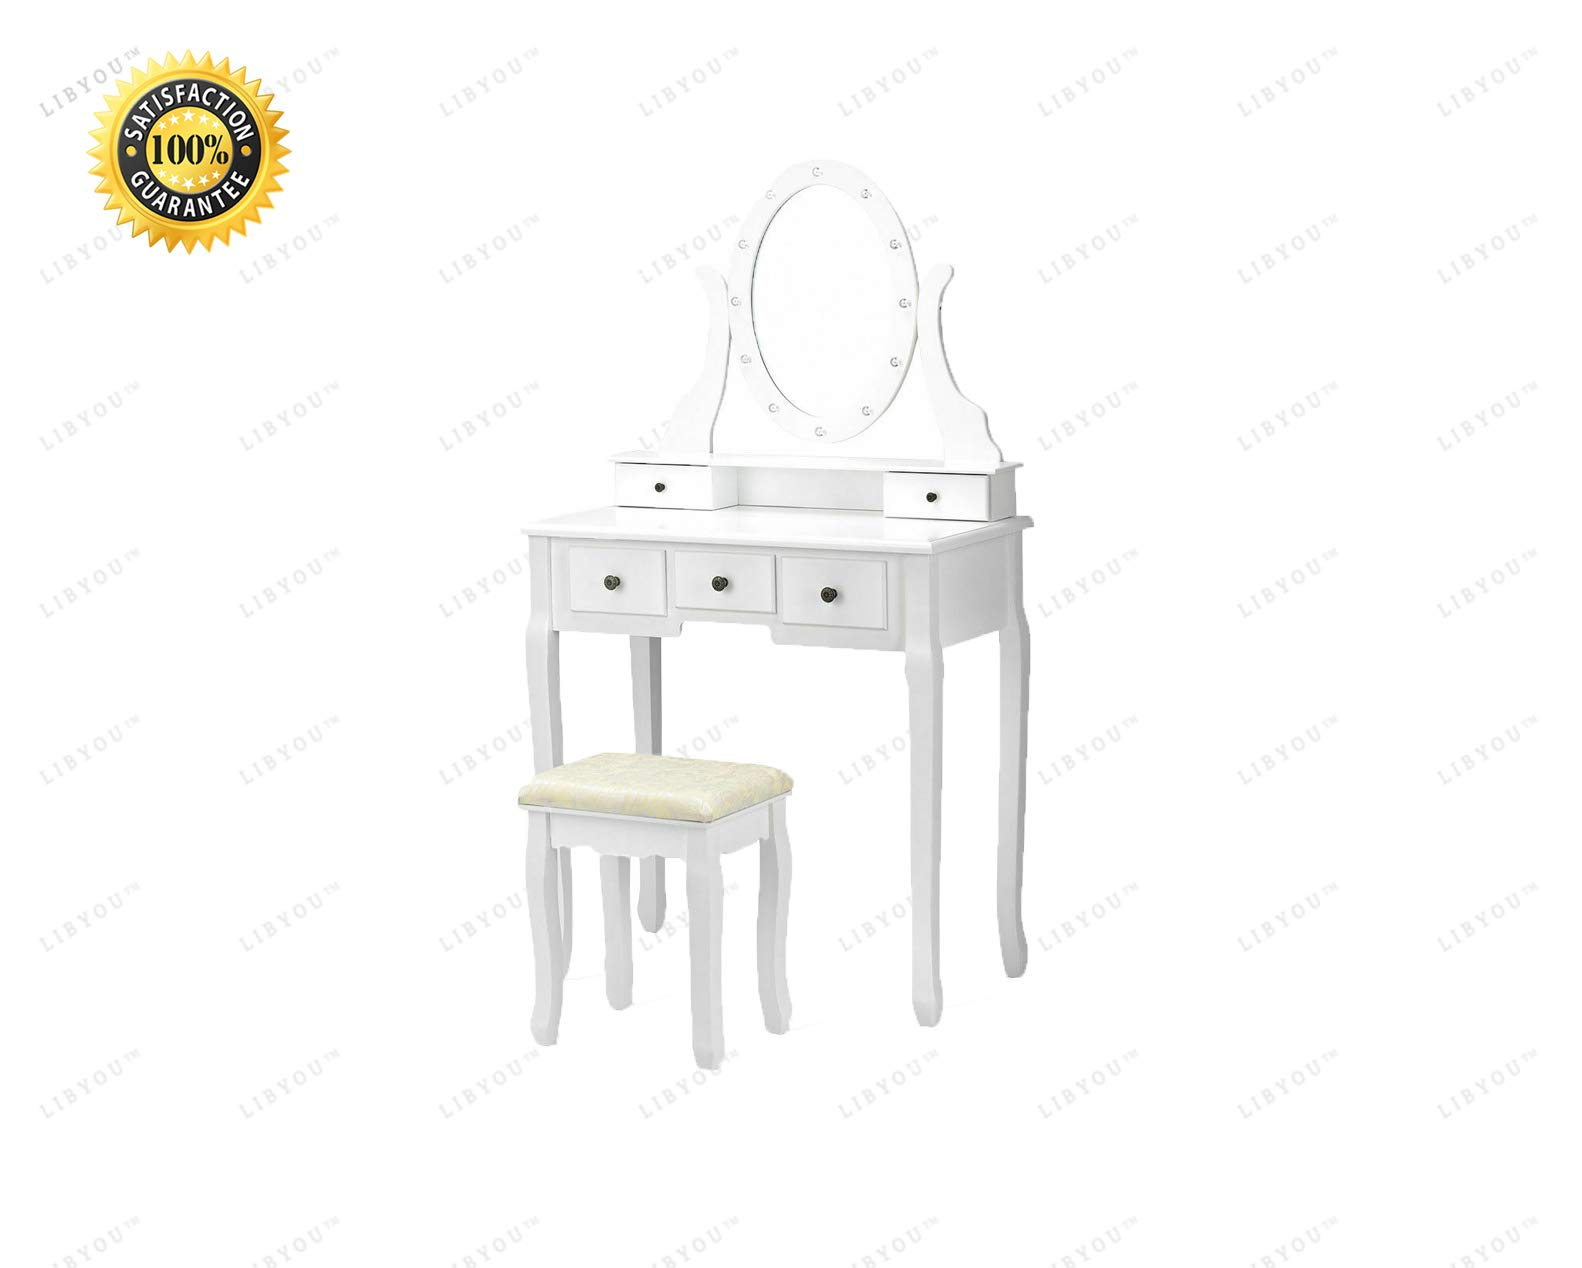 LIBYOU__Dressing Table,Drawers Makeup Dressing Table,Vanity Makeup Table Stool Set,Wood Makeup Table Stool Set,Wood Makeup Dressing Table,Mirror Makeup Table, Vanity Table Set,Makeup Dressing Table